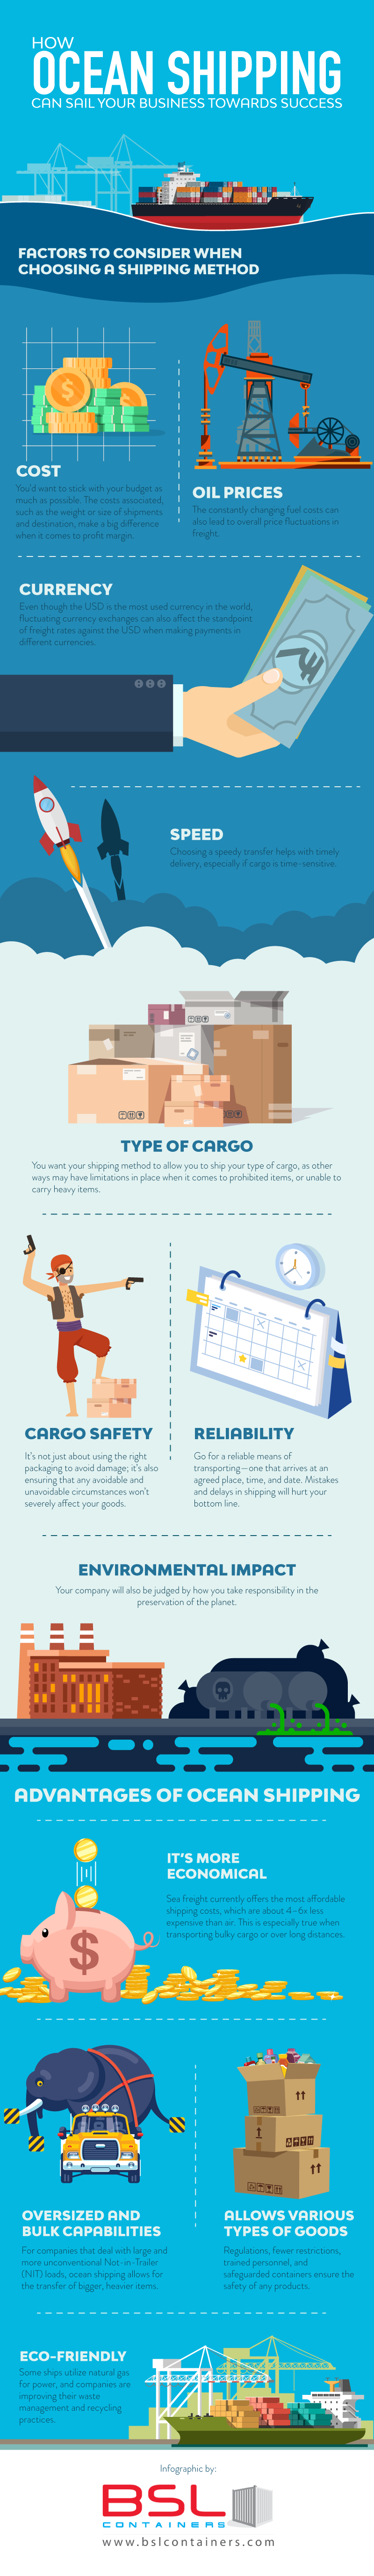 How Ocean Shipping Can Sail Your Business Towards Success_Infographic